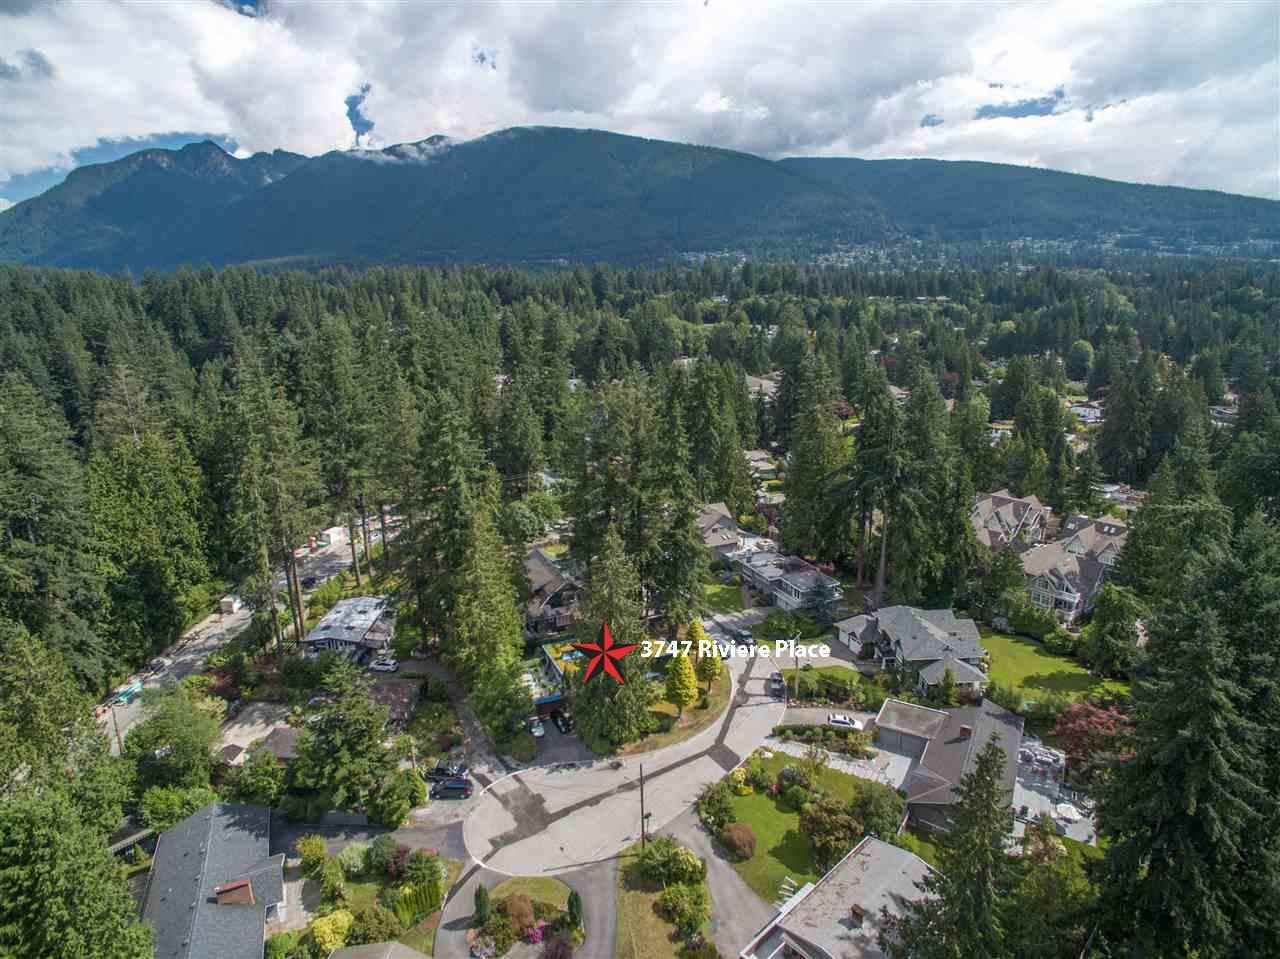 Main Photo: 3747 RIVIERE PLACE in : Edgemont House for sale : MLS®# R2089697